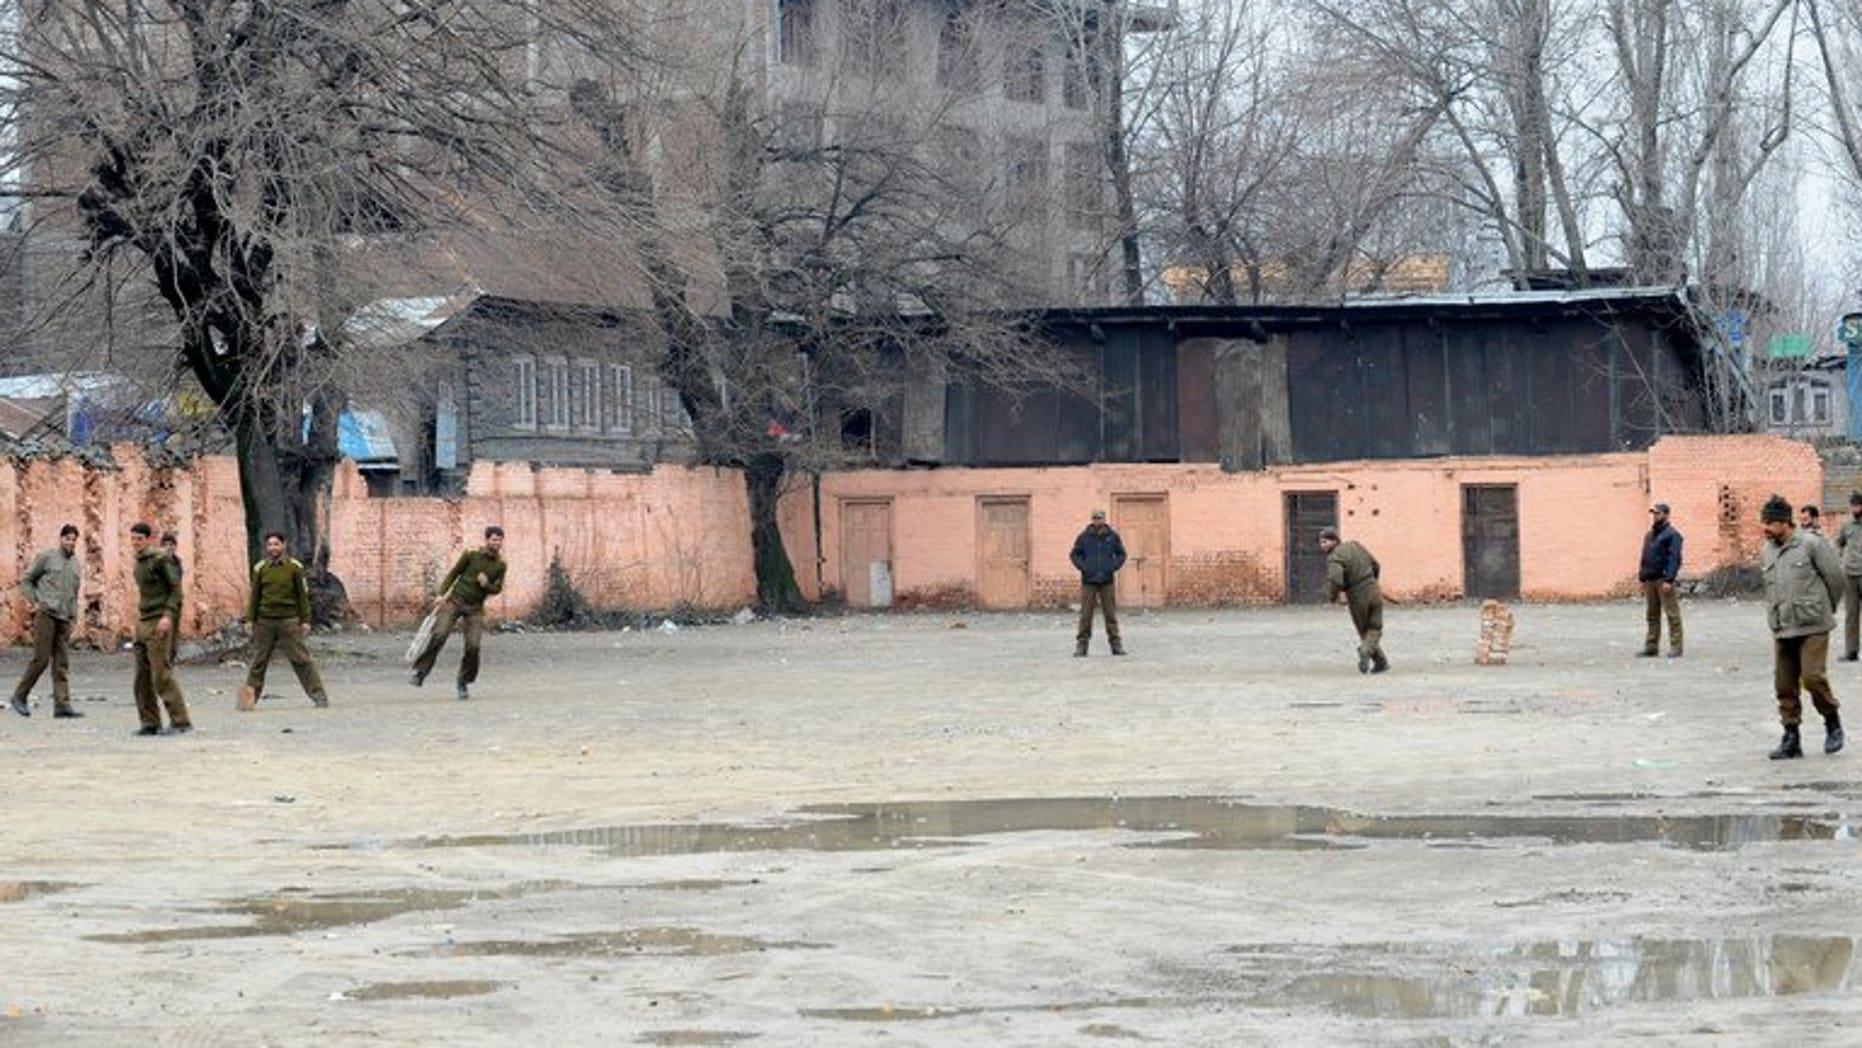 Policemen play cricket during a strike in Srinagar, Kashmir in February. Parvez Rasool on Friday became the first Kashmiri cricketer to be selected for India after he was named for a limited-overs series against Zimbabwe later this month.